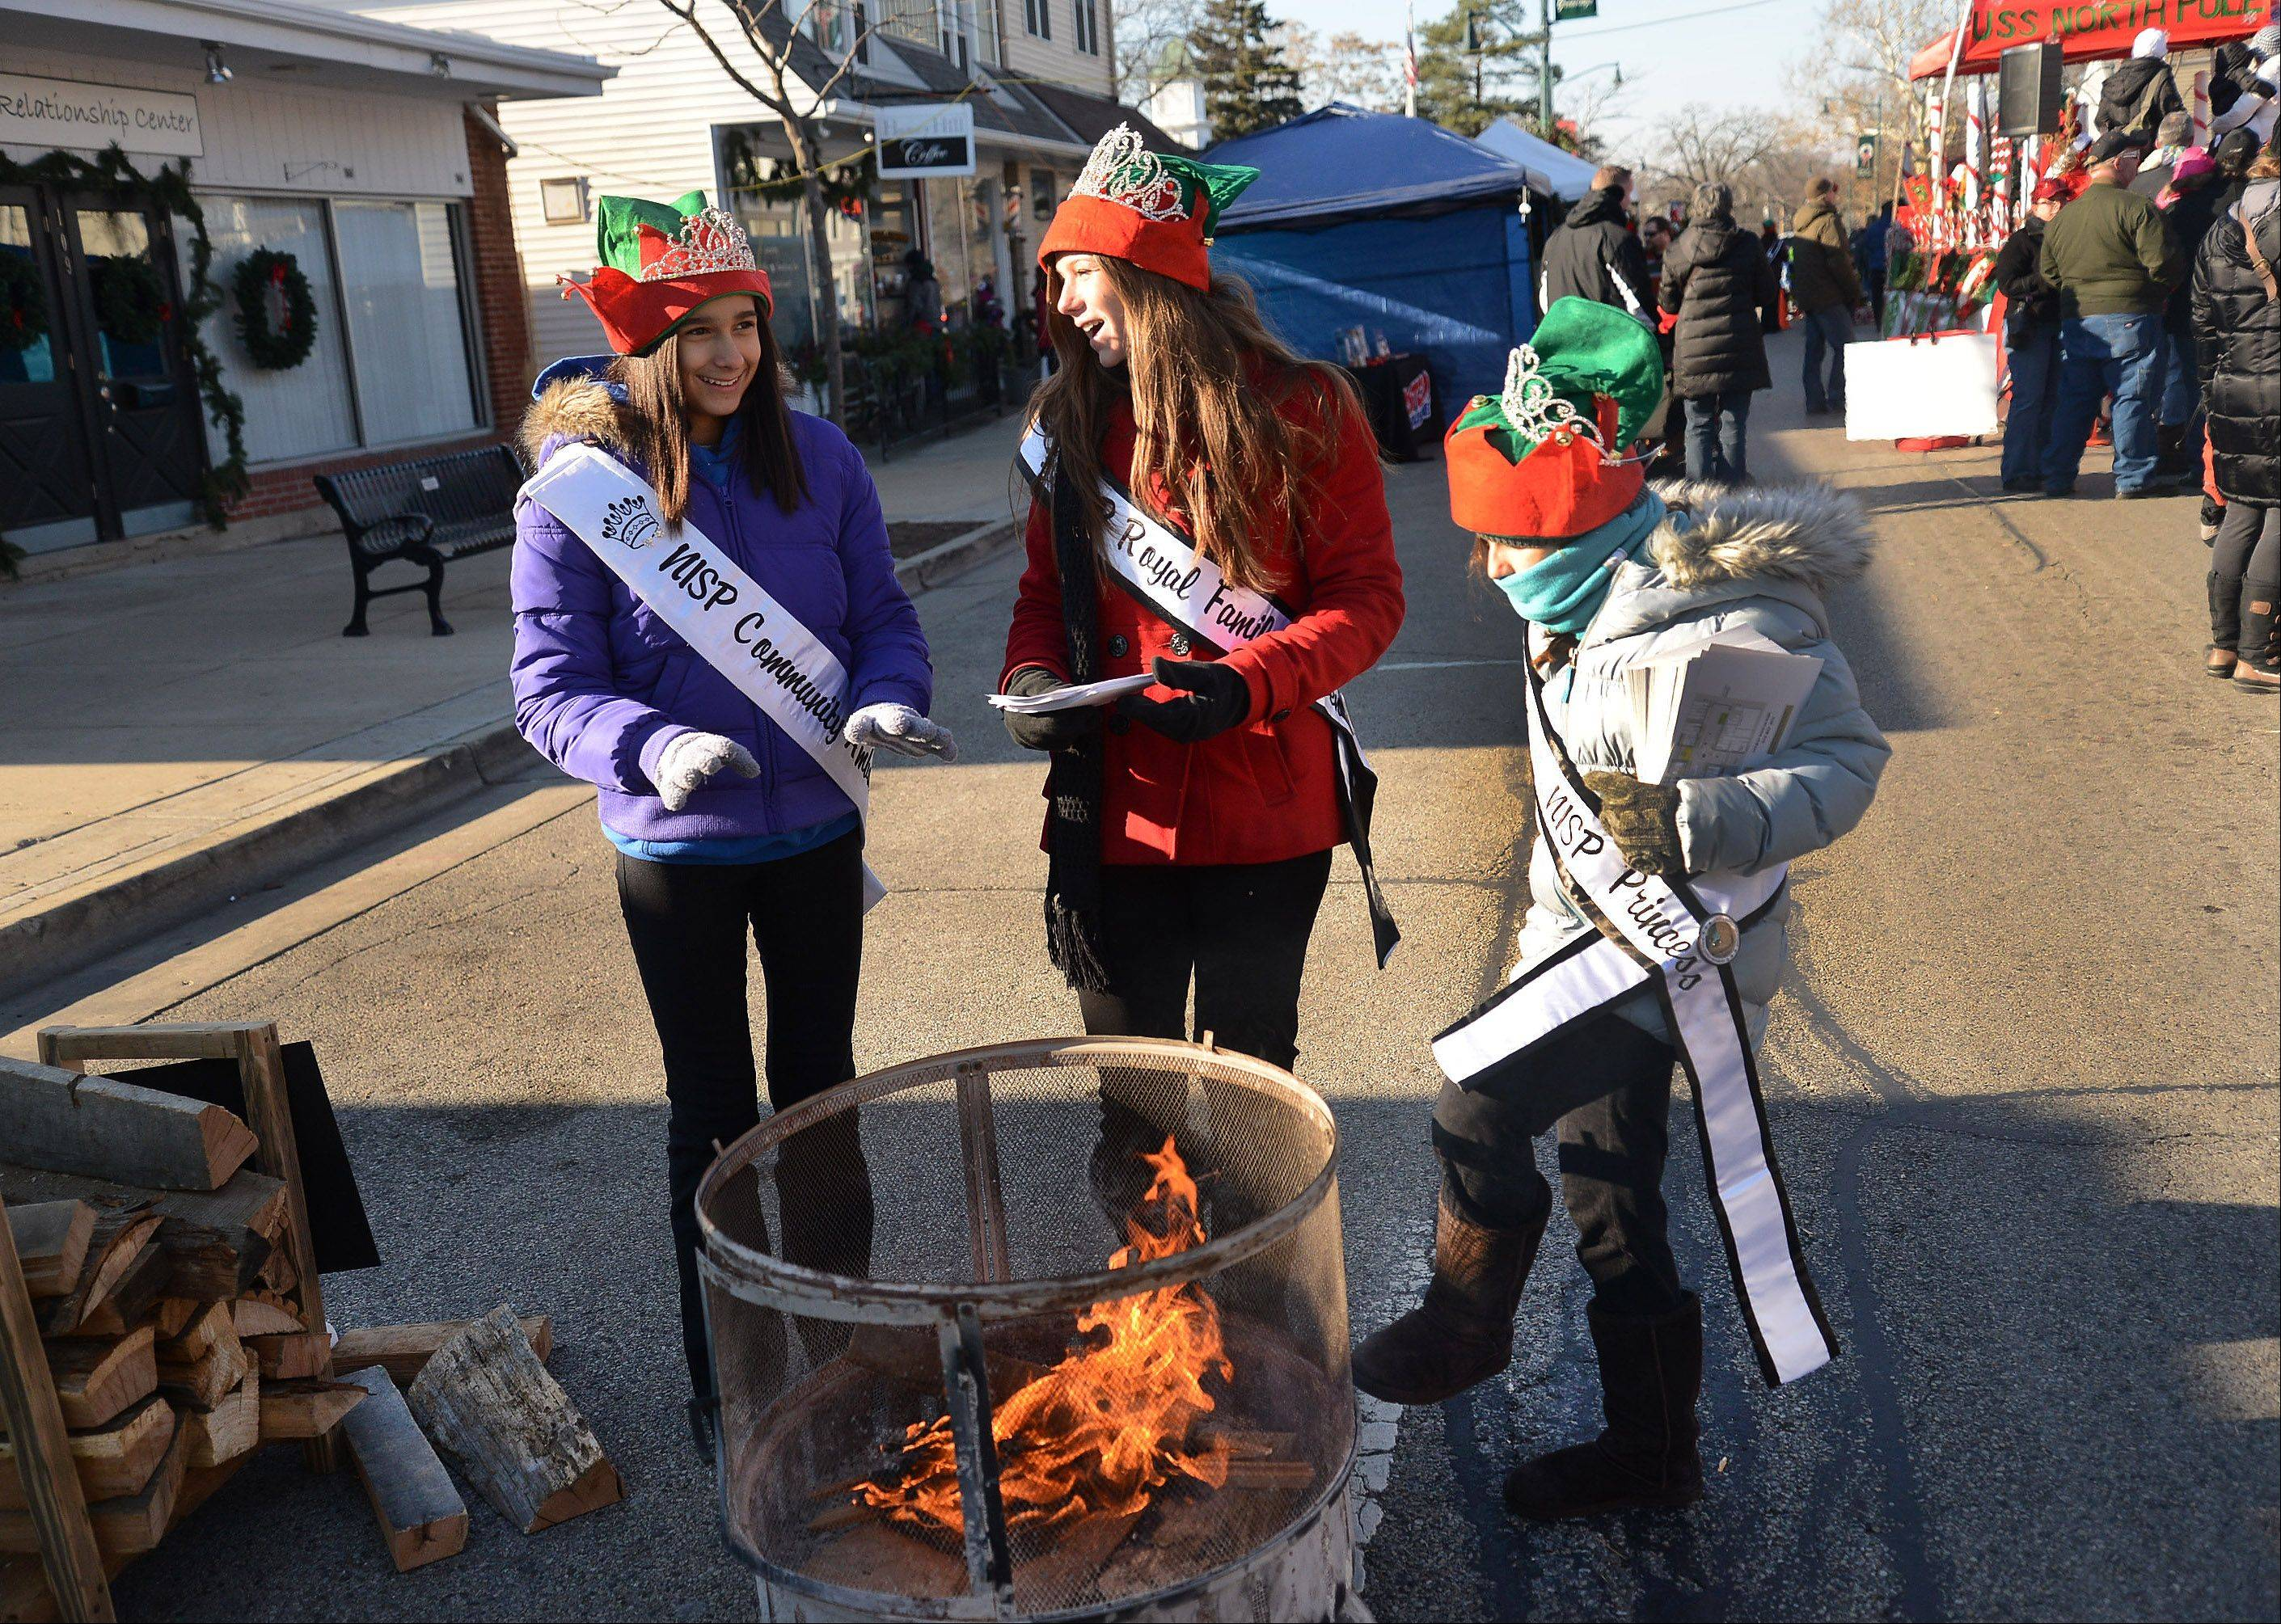 From left, Serenity Perez, Kara Pohlman and Abby Hammer try to keep warm Saturday during Wauconda's Holiday Walk on Main Street. All three belong to the Northern Illinois Scholarship Program, which embraces community service and helping others.